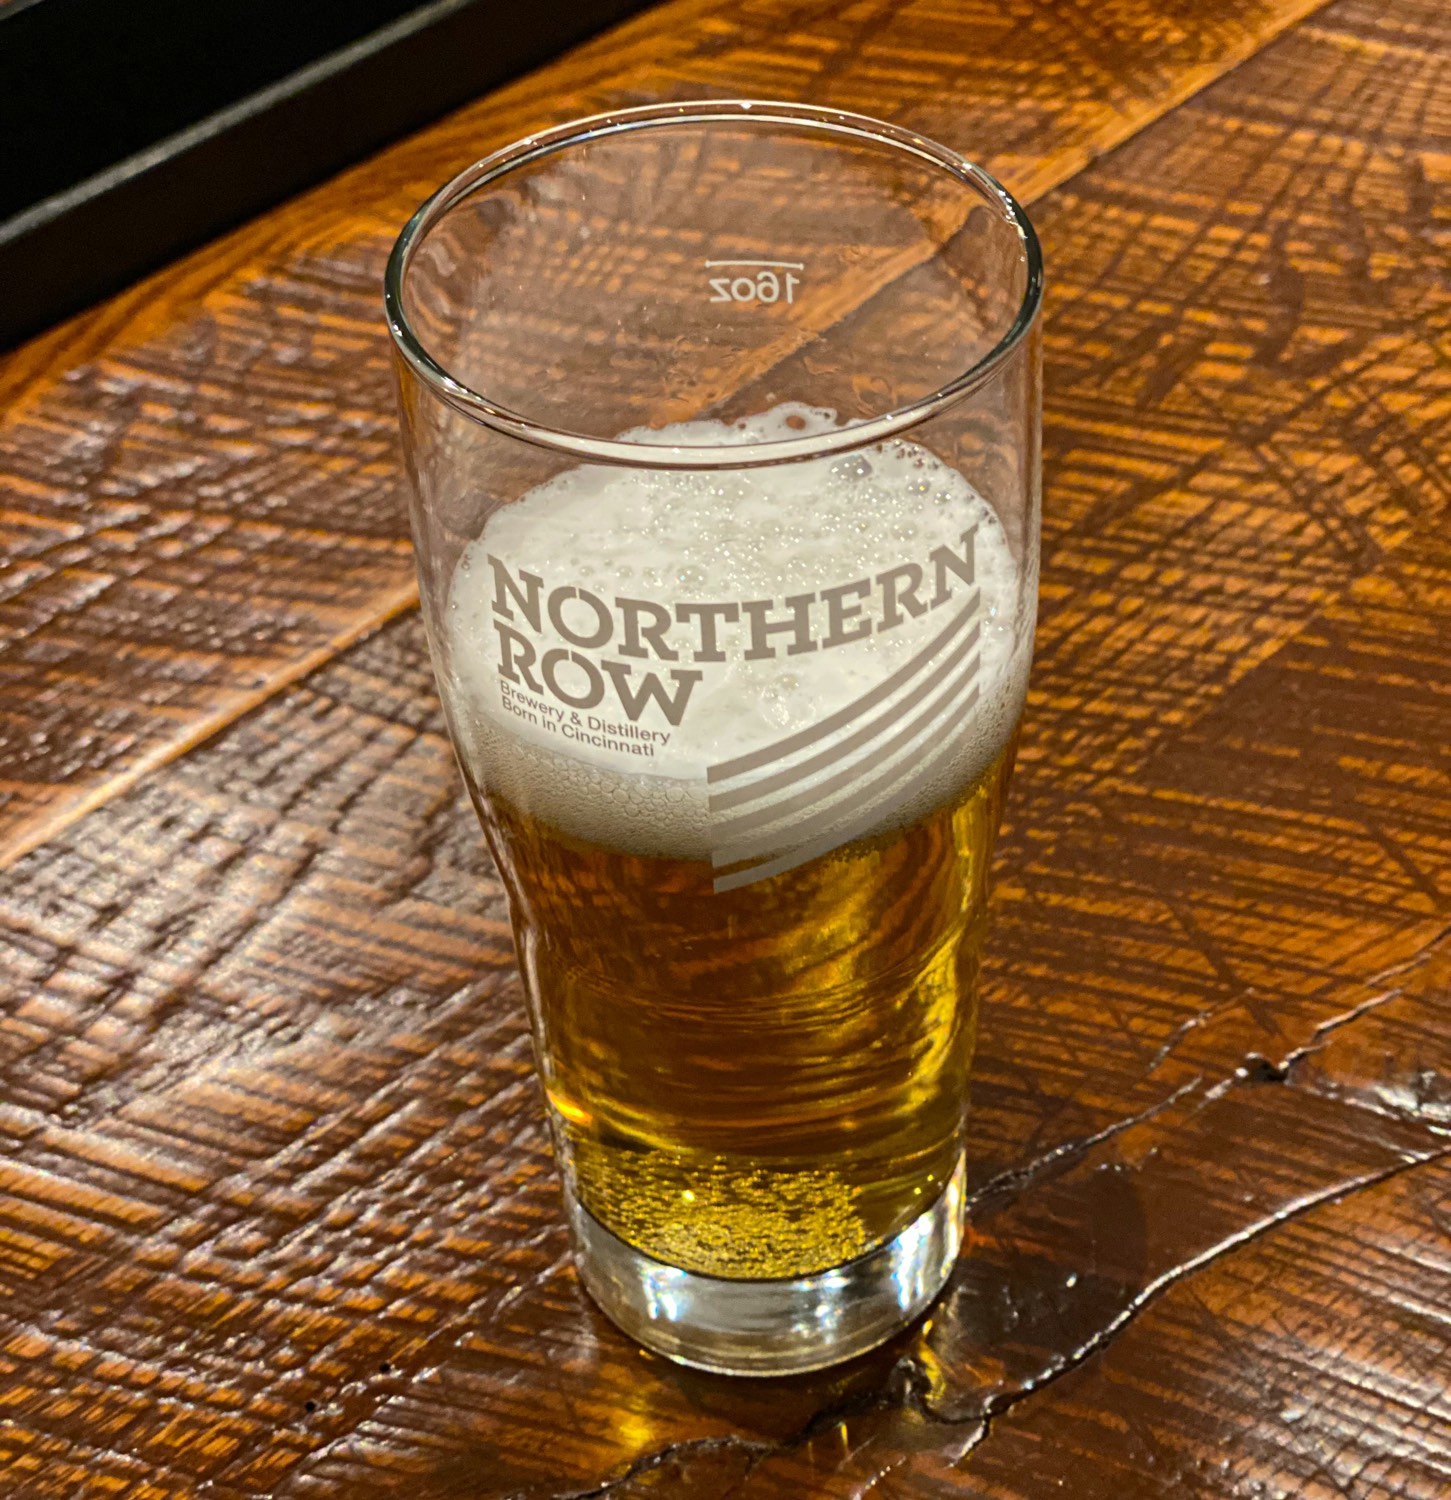 Greg Larsen Head Brewer Northern Row Brewery – Craft Beer Podcast Episode 119 by Steven Shomler